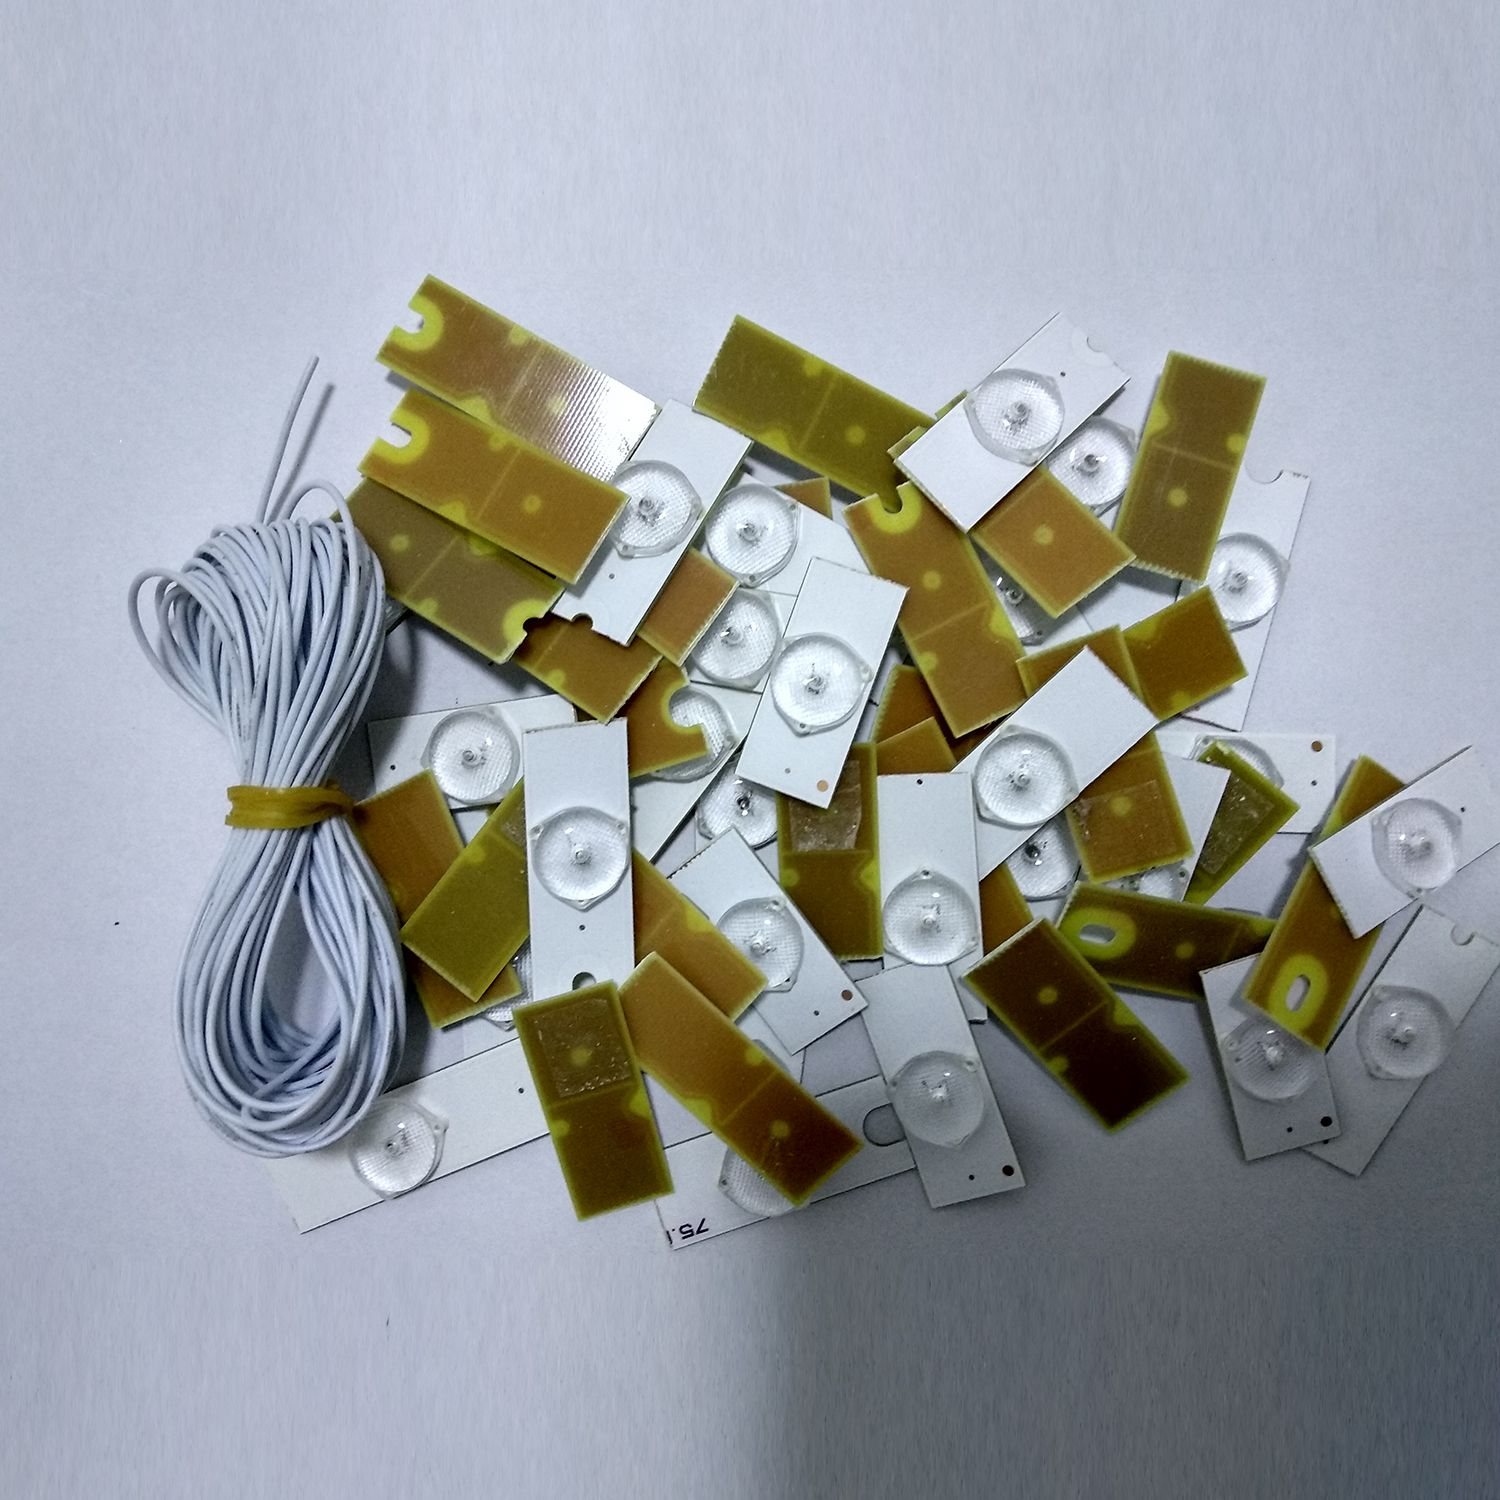 WISH-3V SMD Lamp Beads with Optical Lens Fliter for 32-65 inch LED TV Repair(20pcs 3V with Cable) the led clothing lights 3v 10 beads with magnet